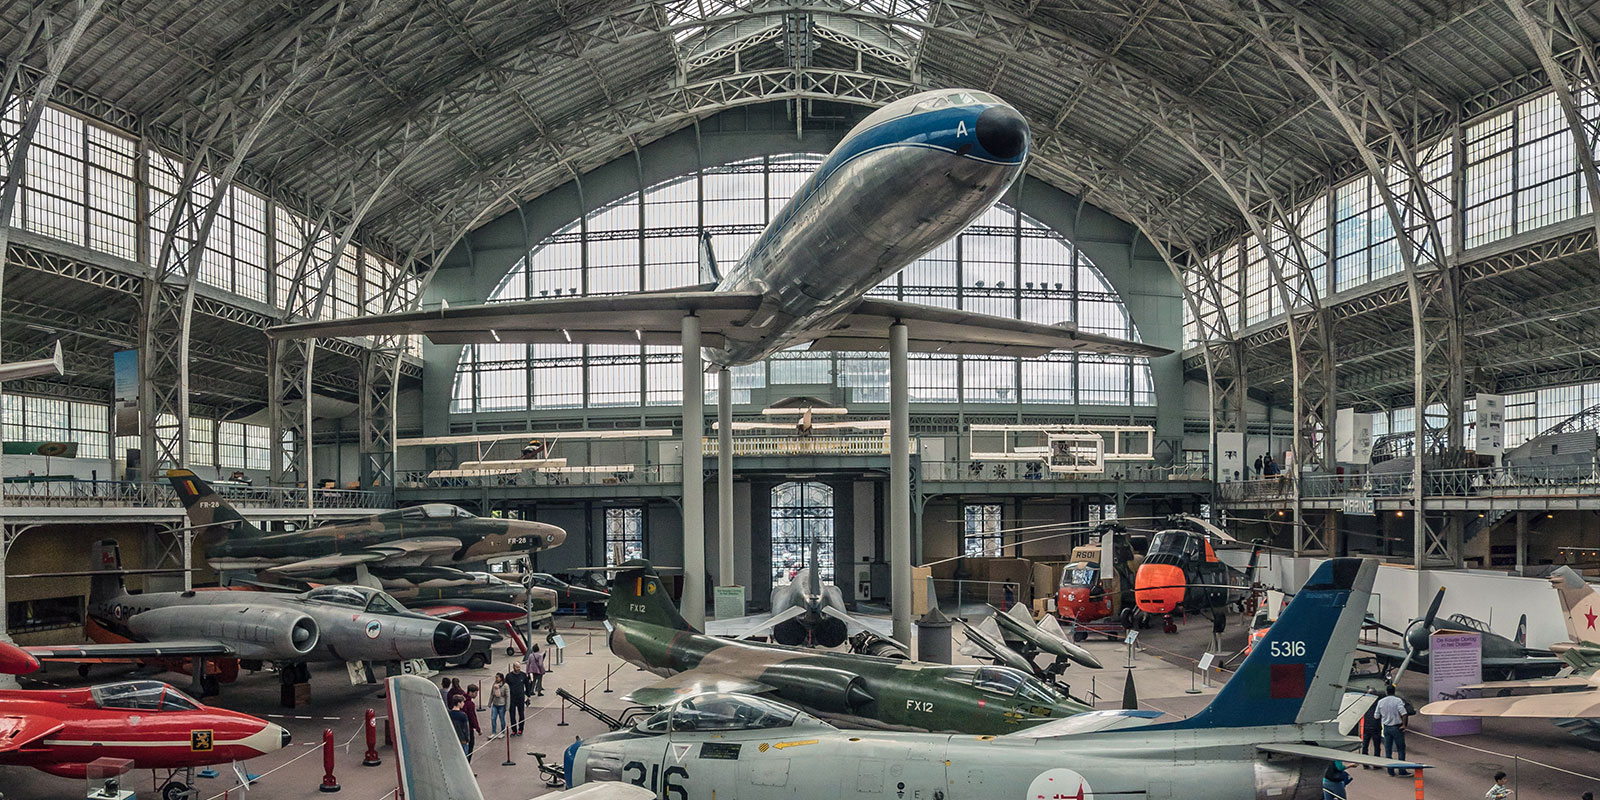 AviationHall